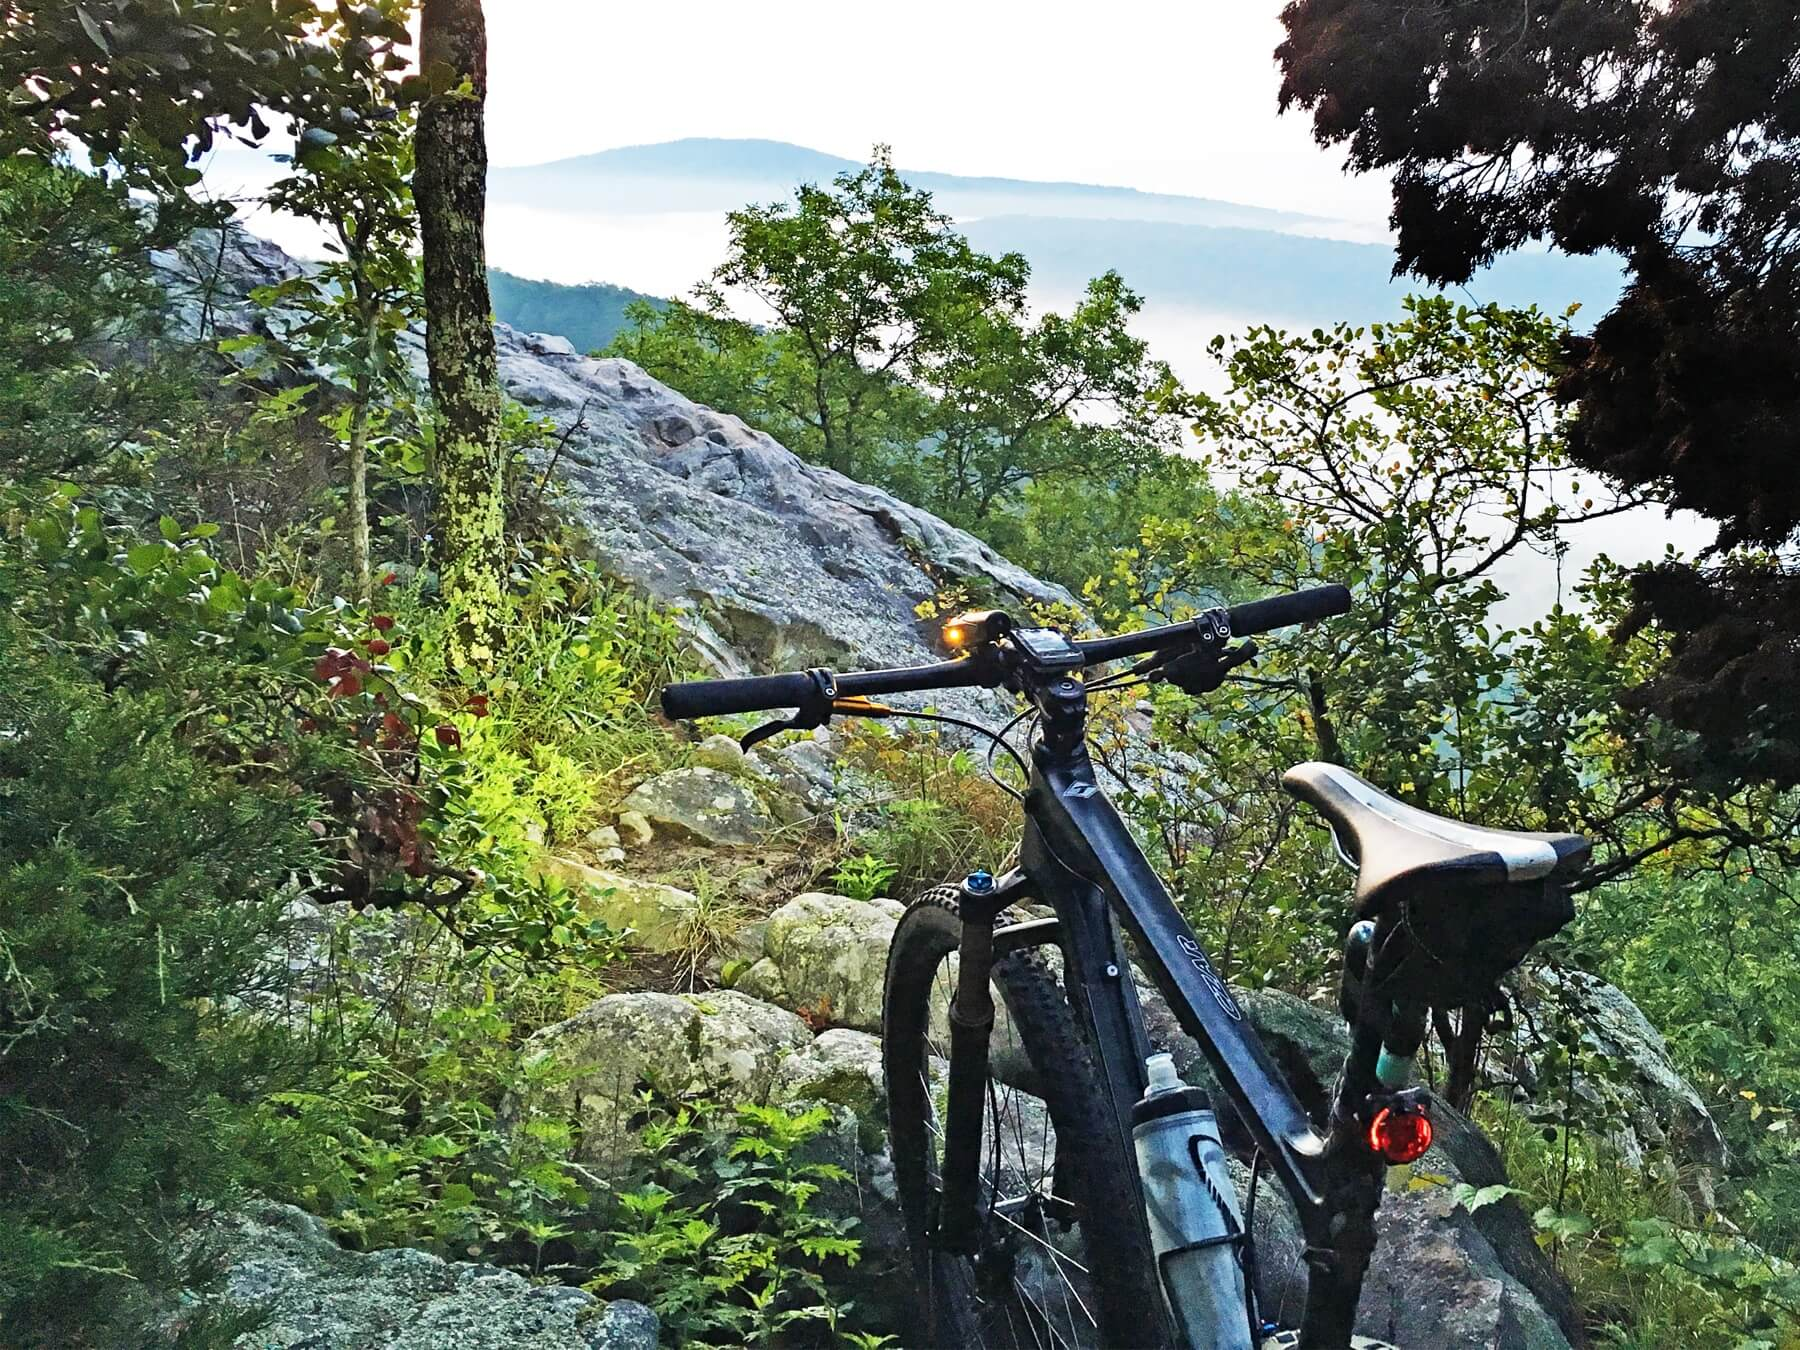 Michael O'Kelley takes early morning mountain-bike rides to the top of Double Oak Mountain, directly above Mt Laurel, where he enjoys this stunning view.